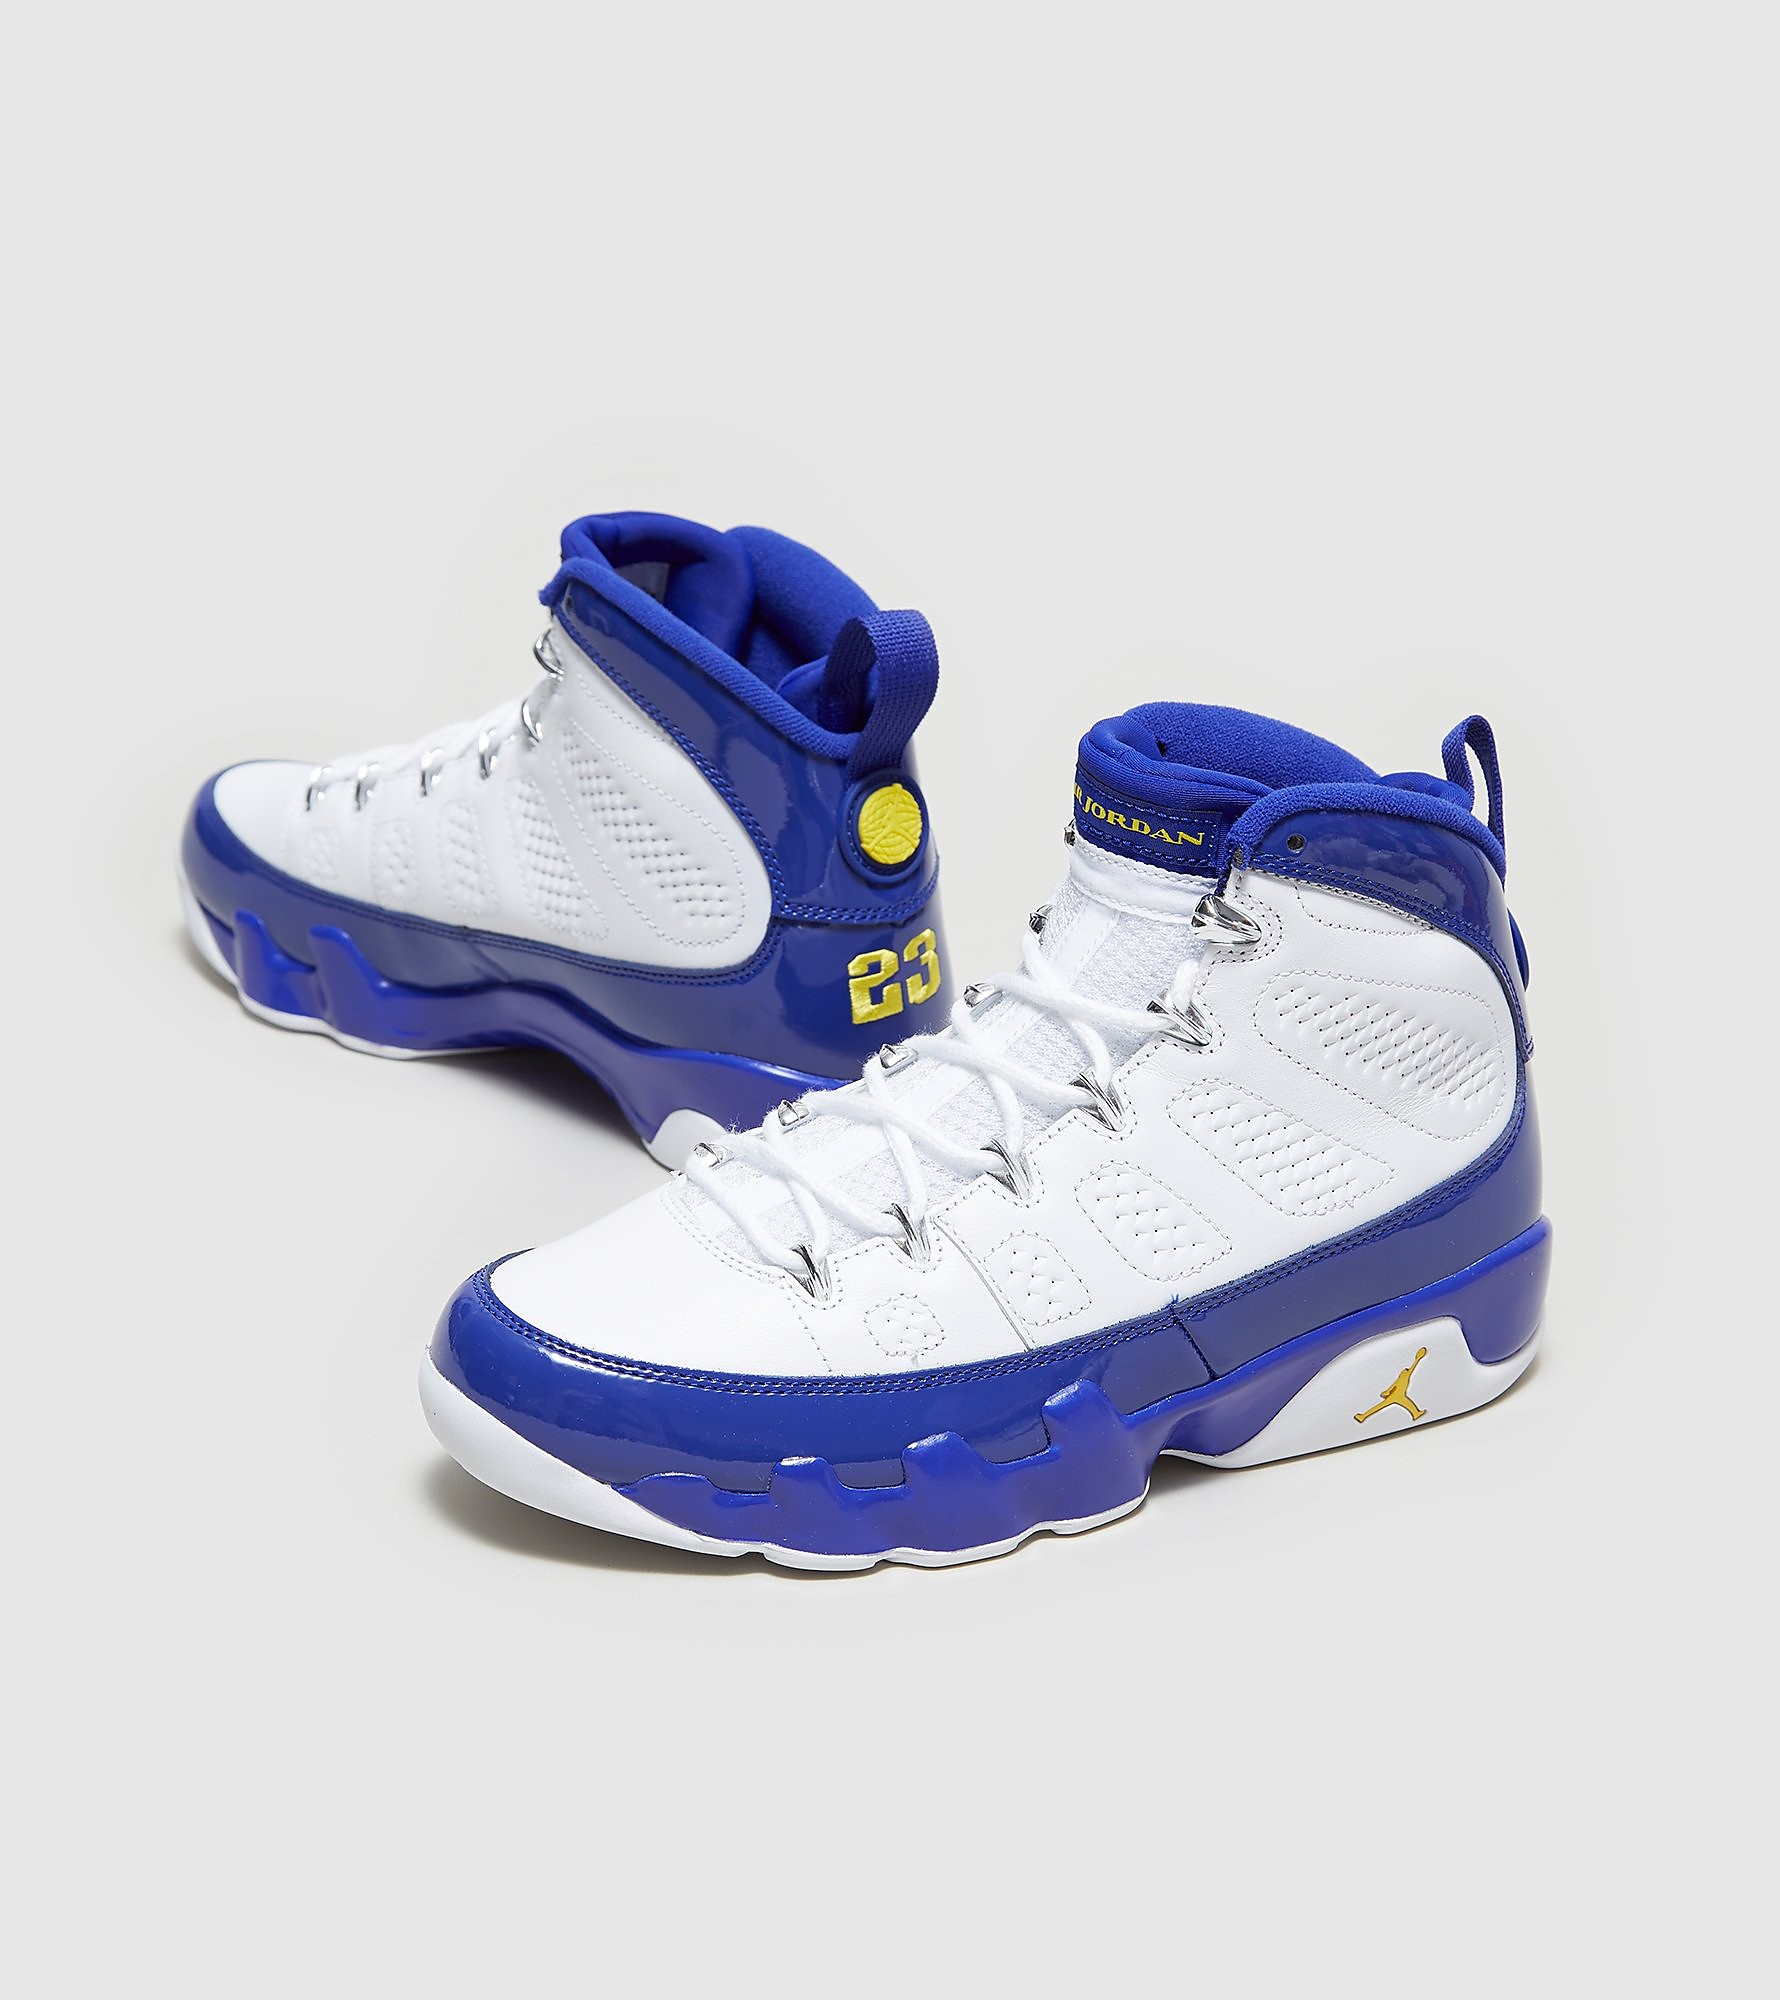 Jordan 9 Retro 'Tour Yellow'